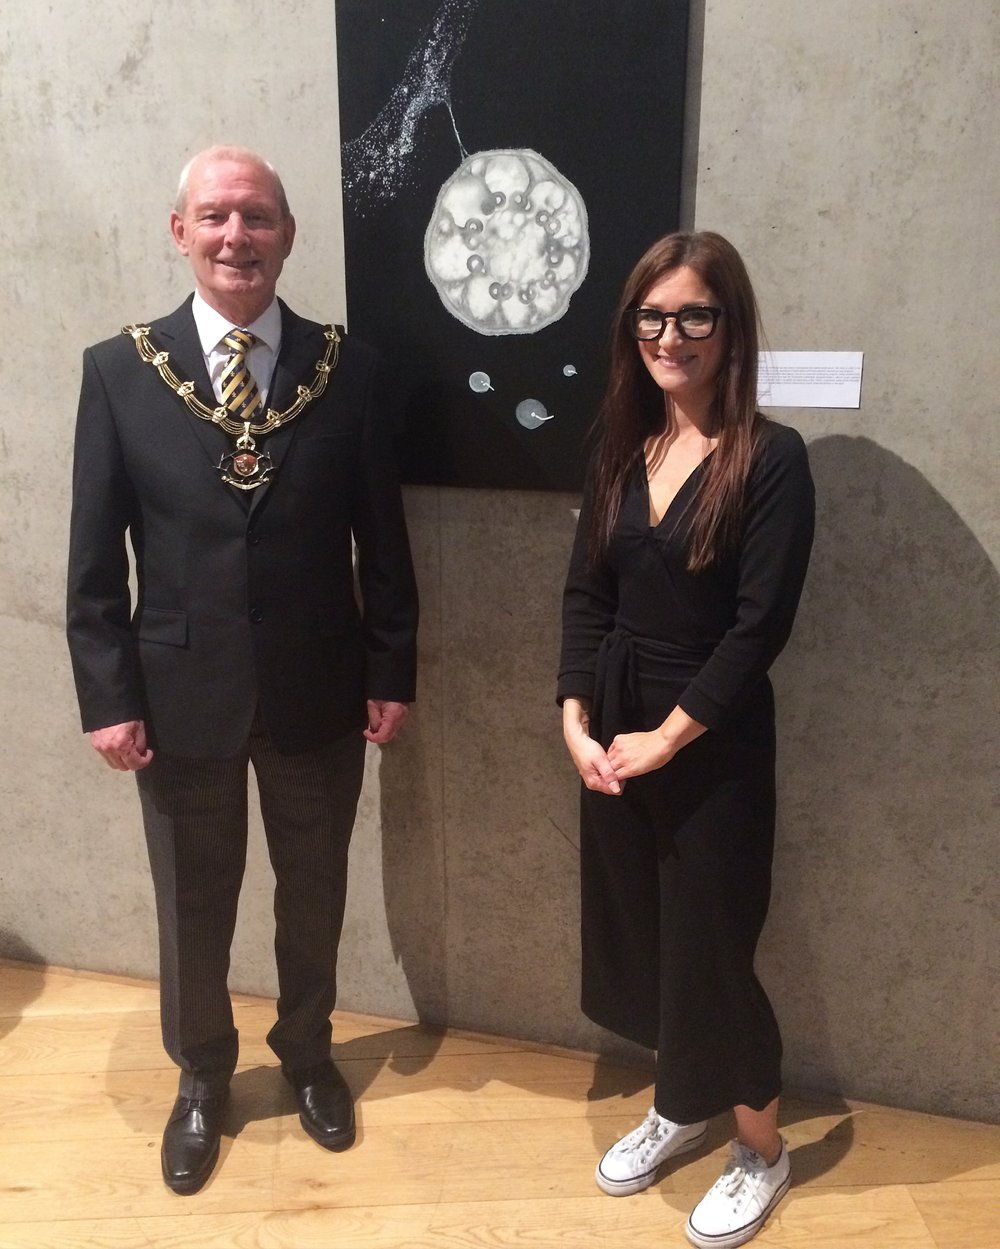 Sheriff of Nottingham Glynn Jenkins and me at Nottingham Contemporary exhibiting ' Cilia Black; Surprise, Surprise'  for Pint Of Science Festival 2017